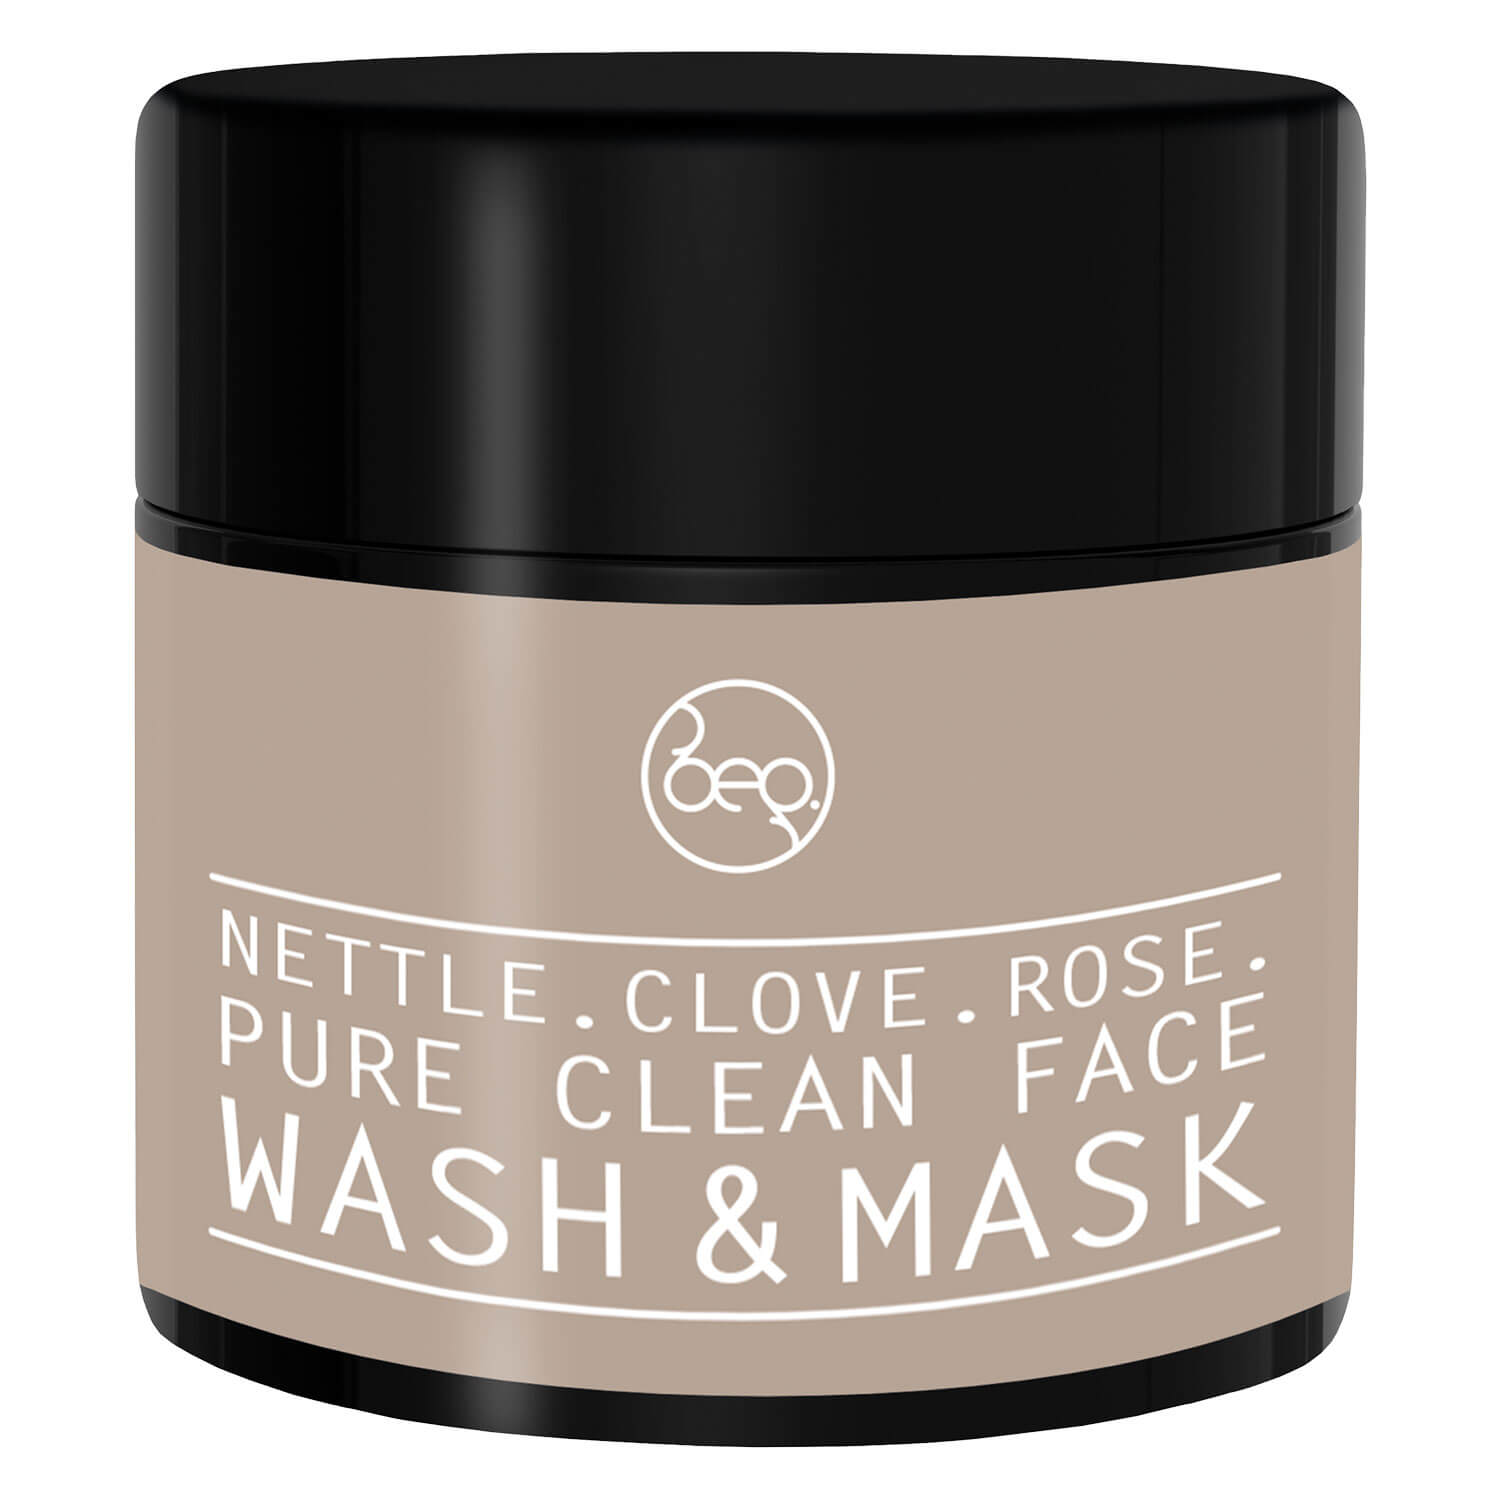 bepure - Wash & Mask PURE CLEAN FACE